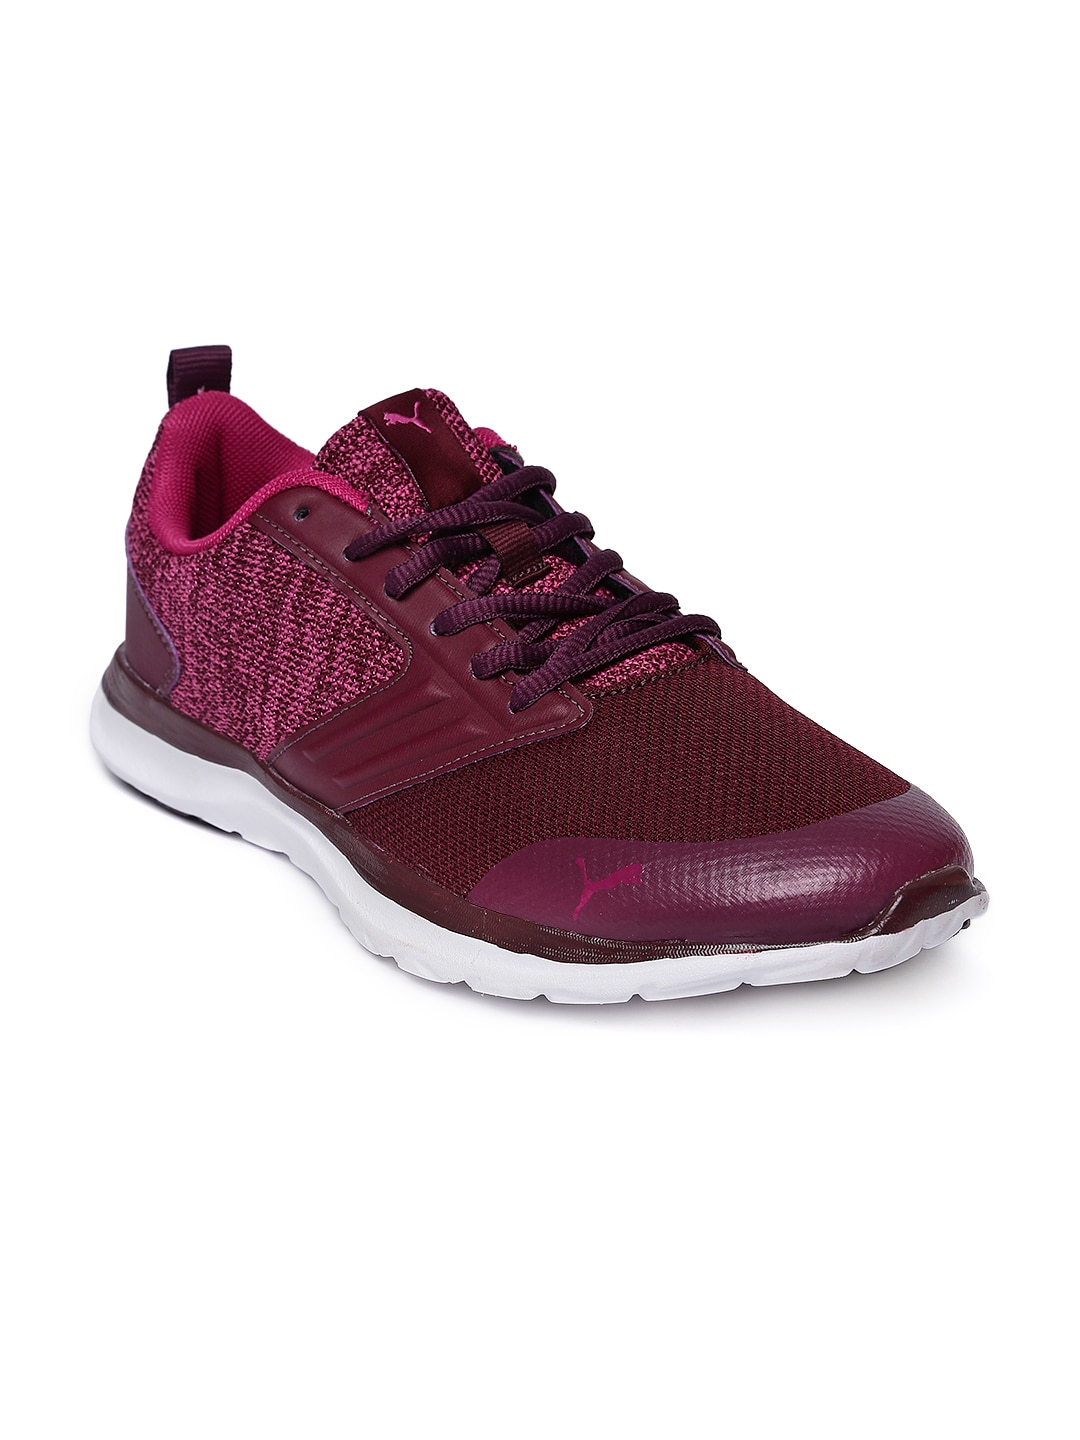 b67dc0d5361f Buy PUMA Women Purple Heritage IDP Running Shoes - Sports Shoes for ...